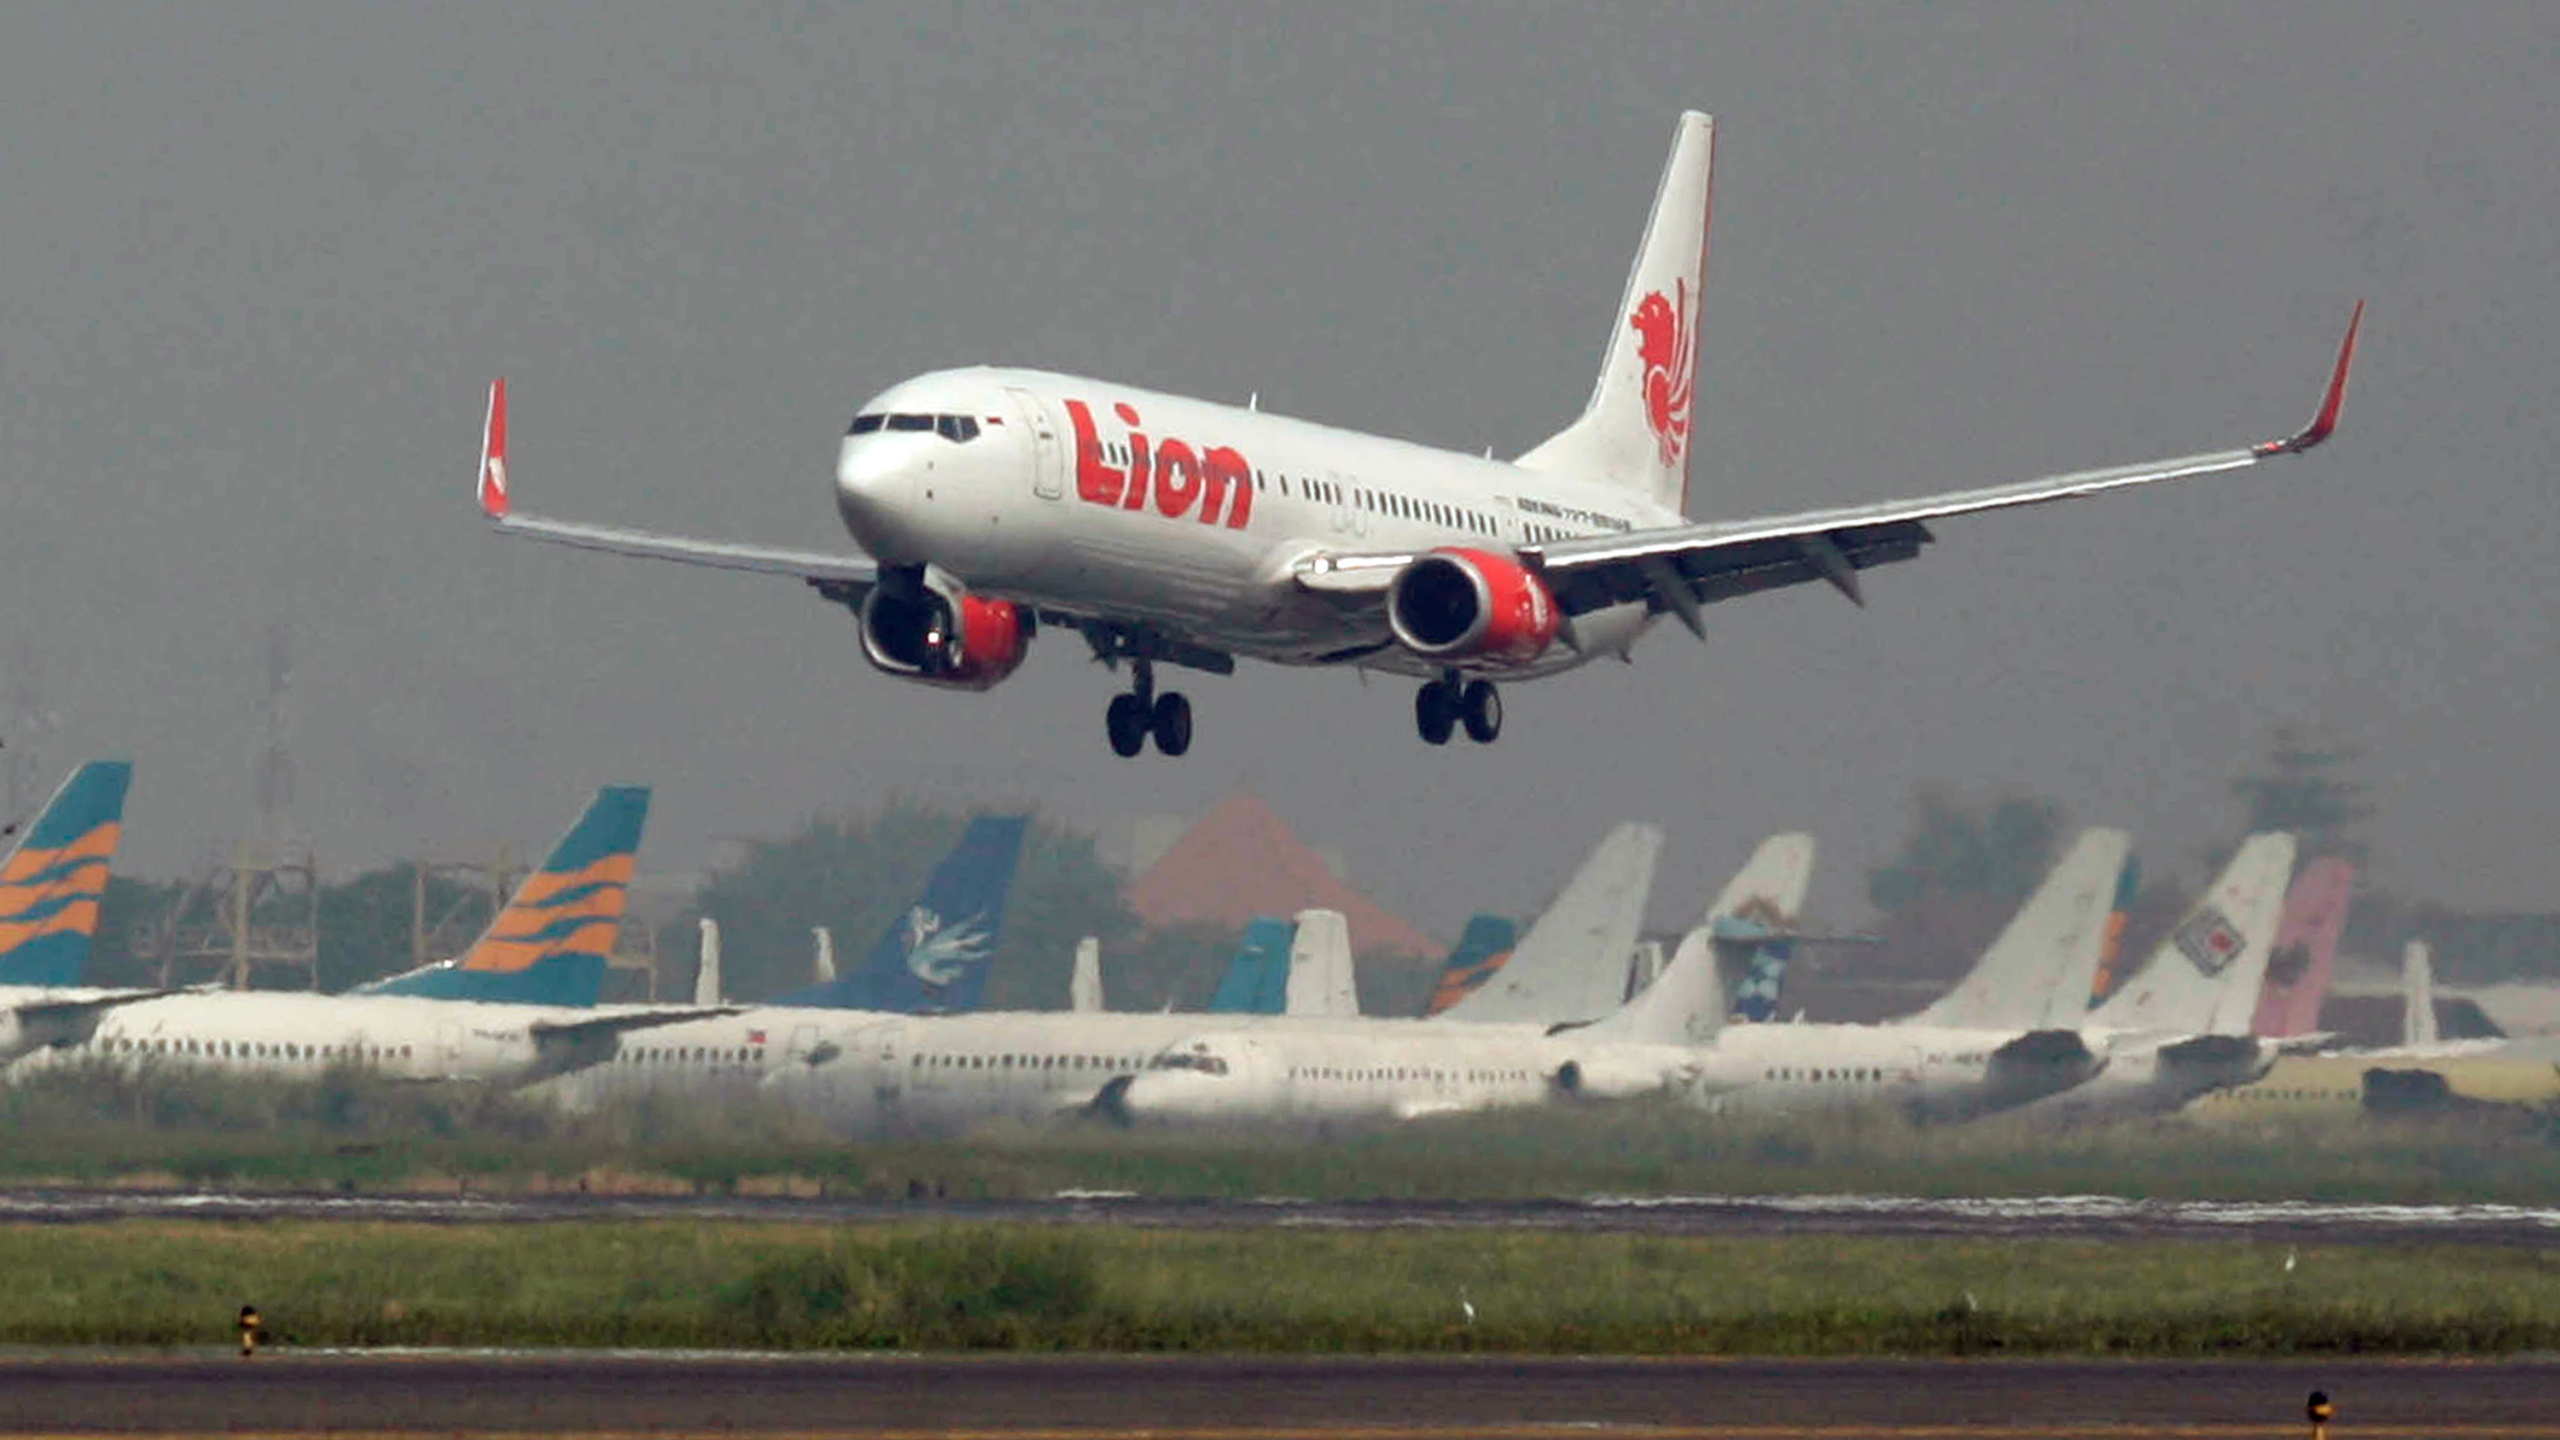 Indonesia_Lion_Air_17016-159532.jpg89565262